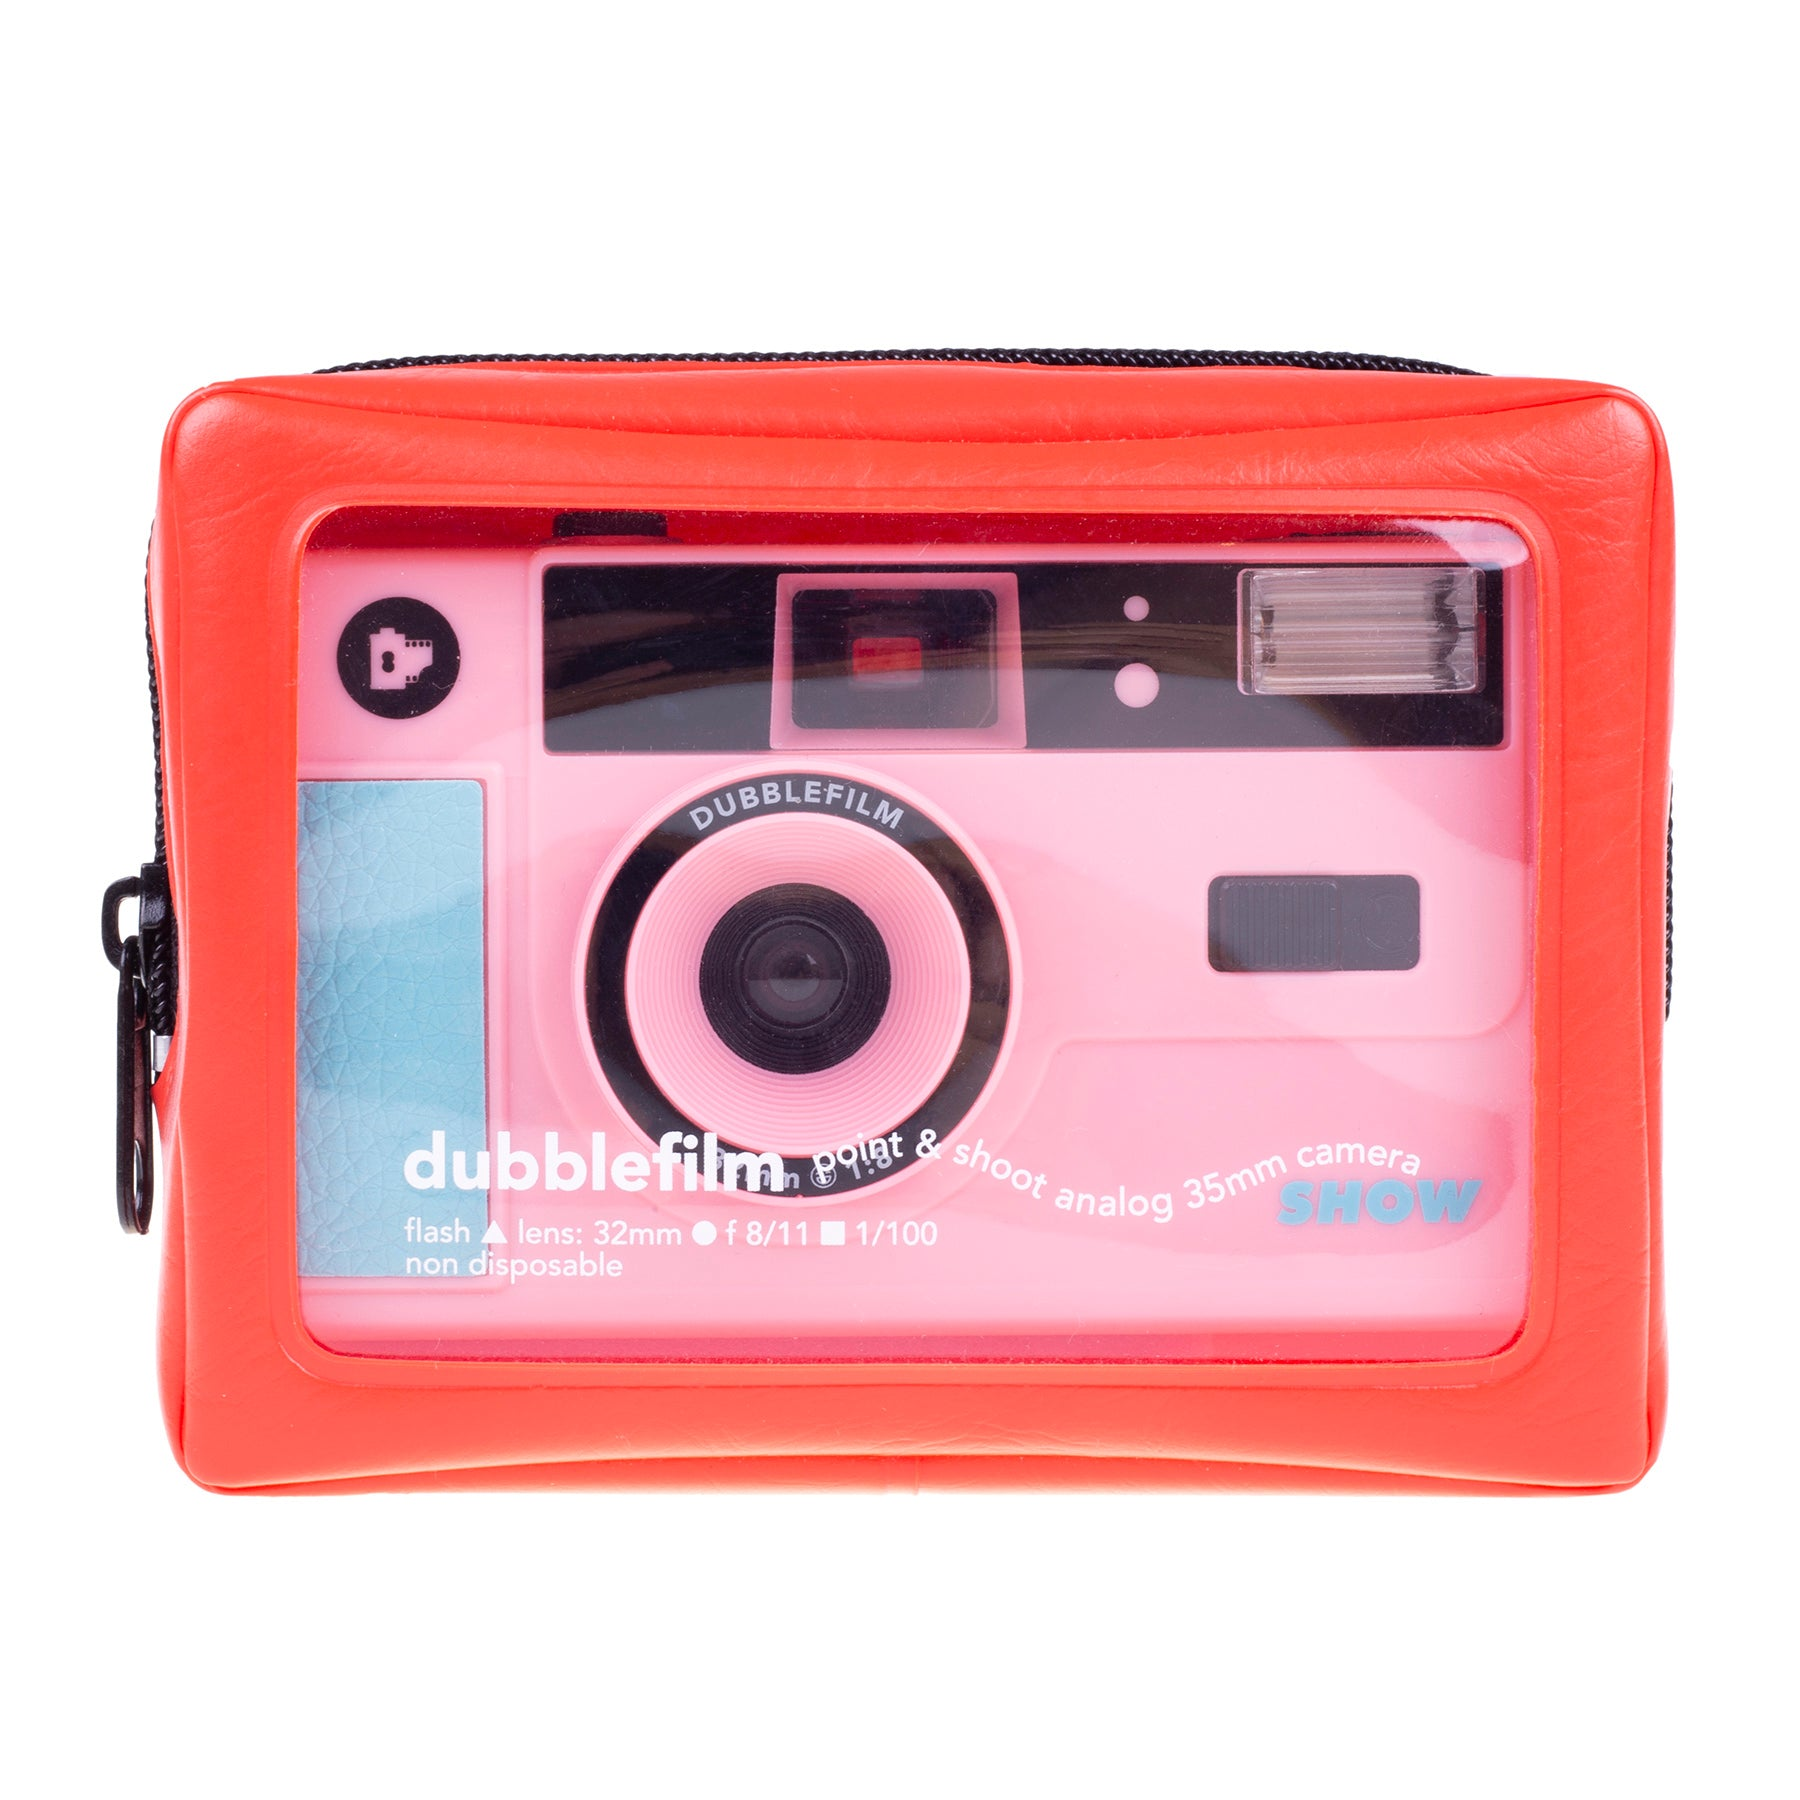 SHOW camera pink - 35mm reusable camera with flash